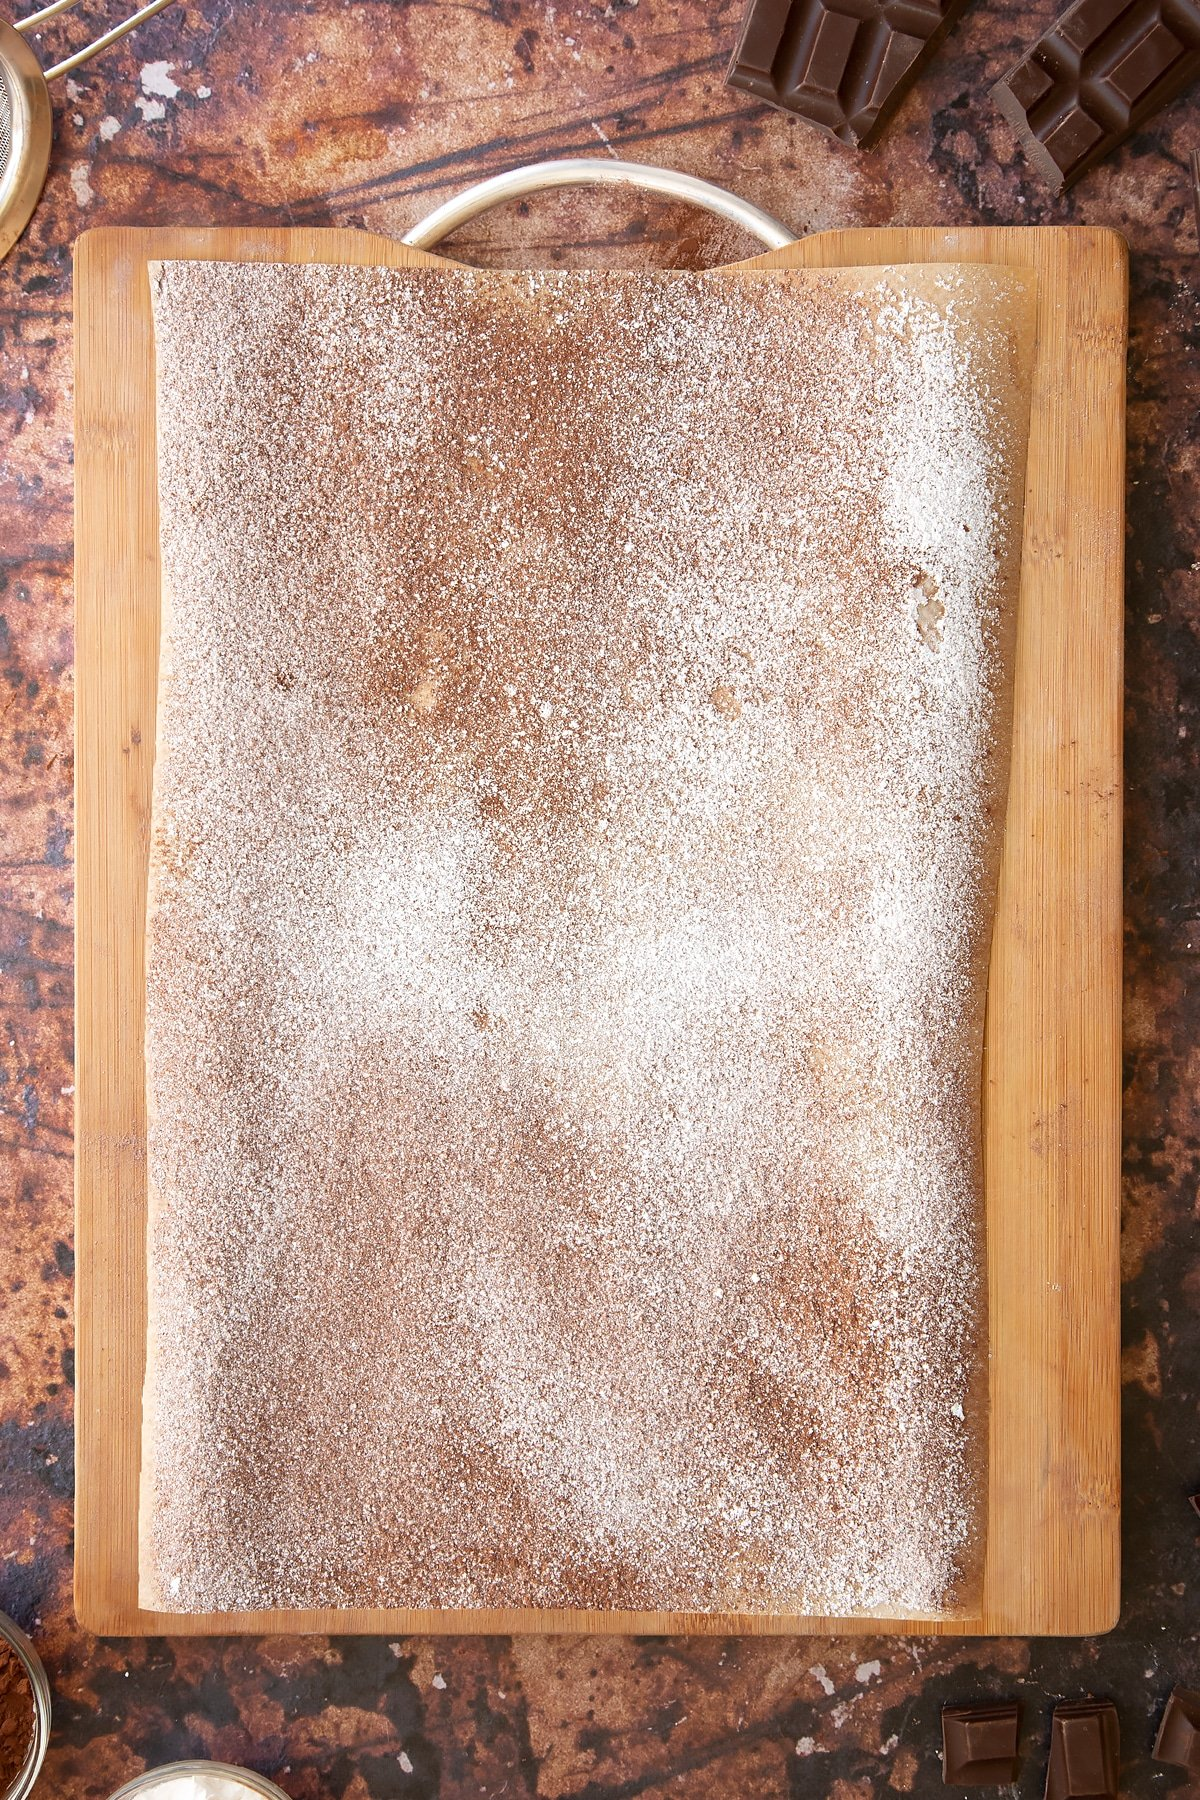 A wooden board and baking paper dusted with cocoa and icing sugar.